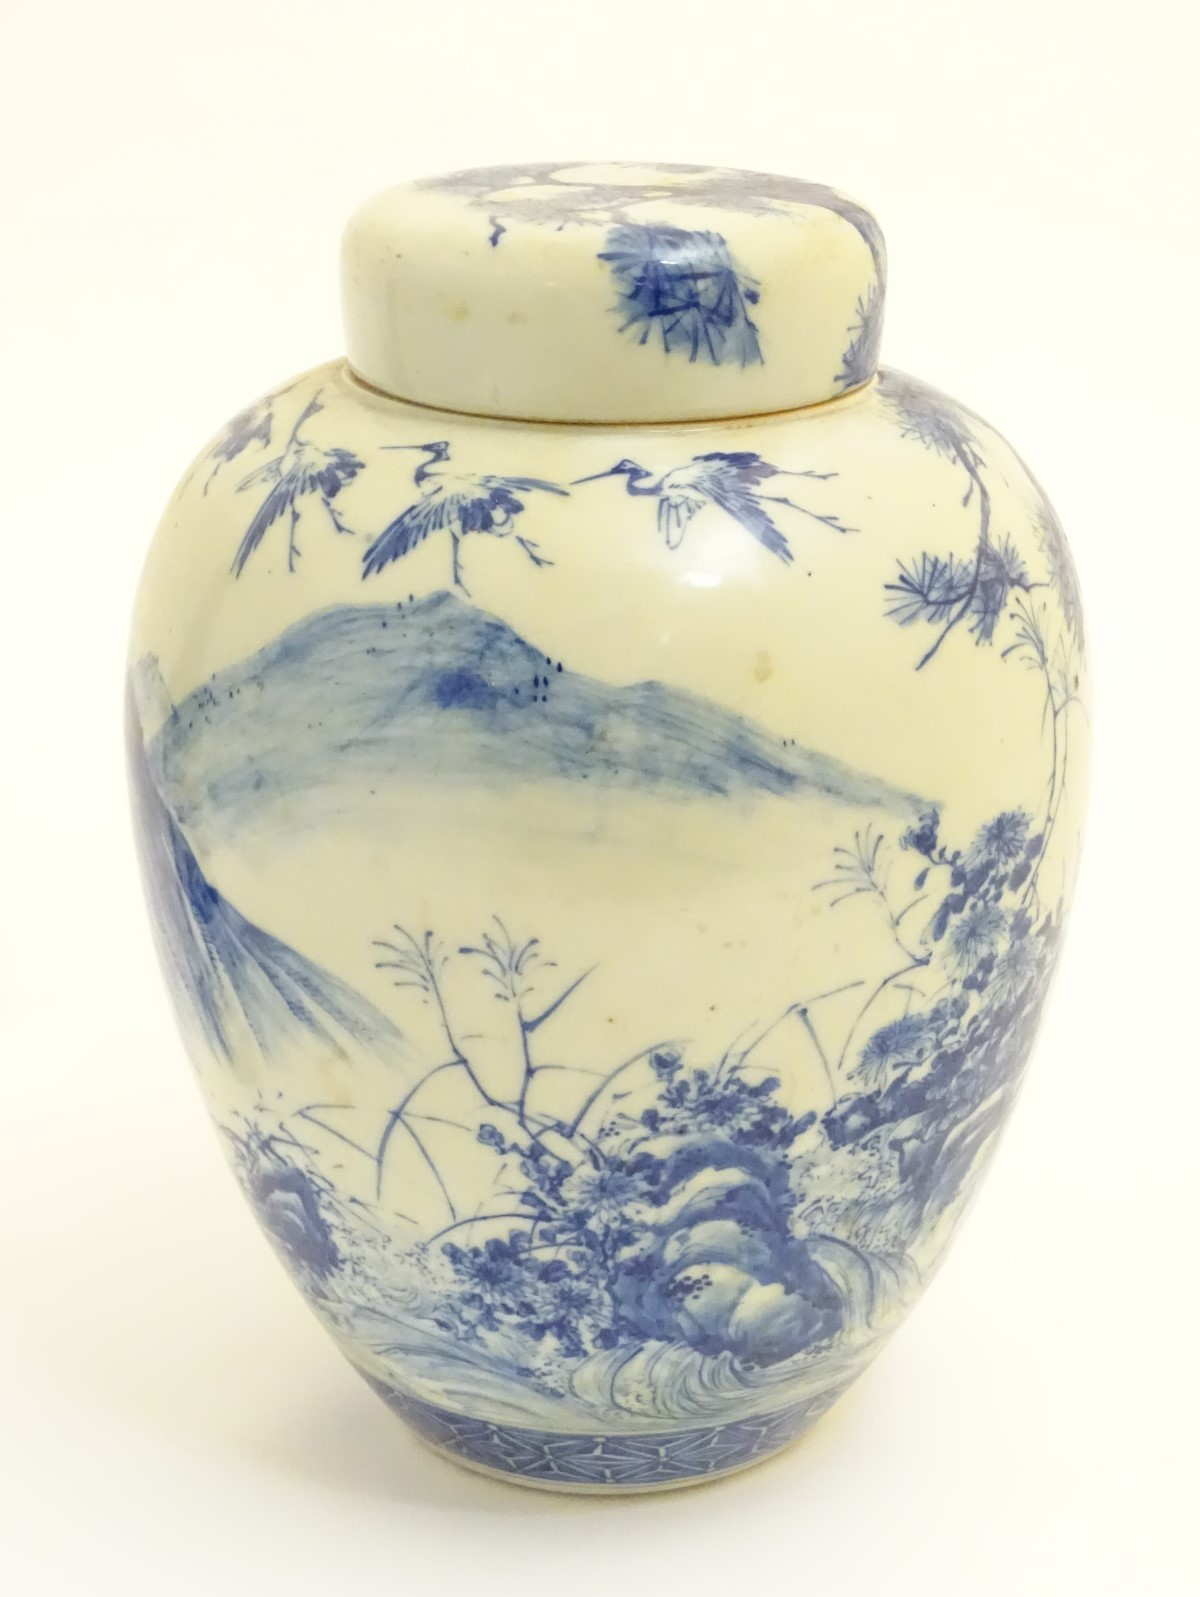 Lot 21 - A large blue and white Japanese lidded ginger jar decorated with a sage sat by a tree in a